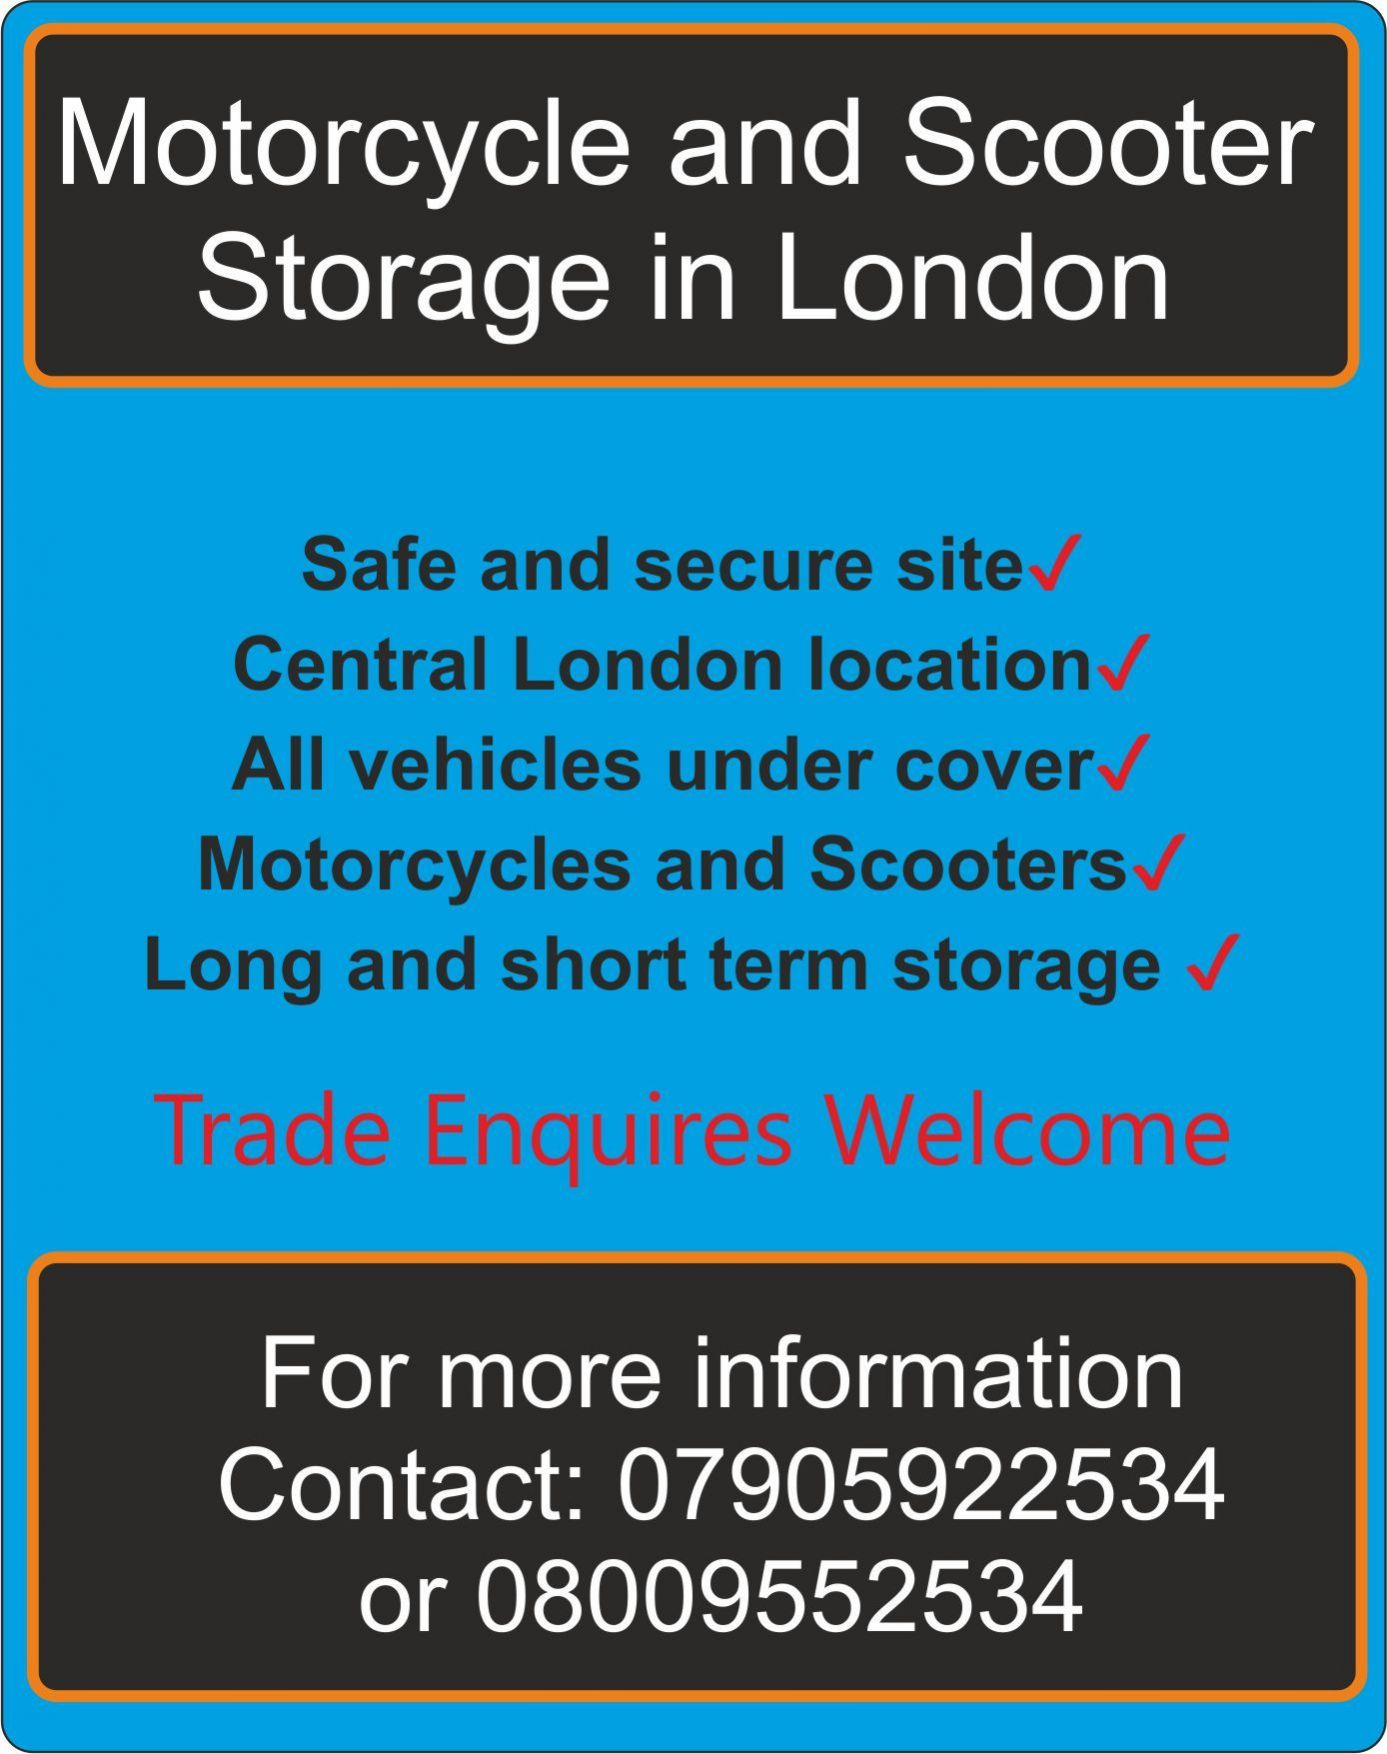 gallery/motorcycle and scooter storage in London